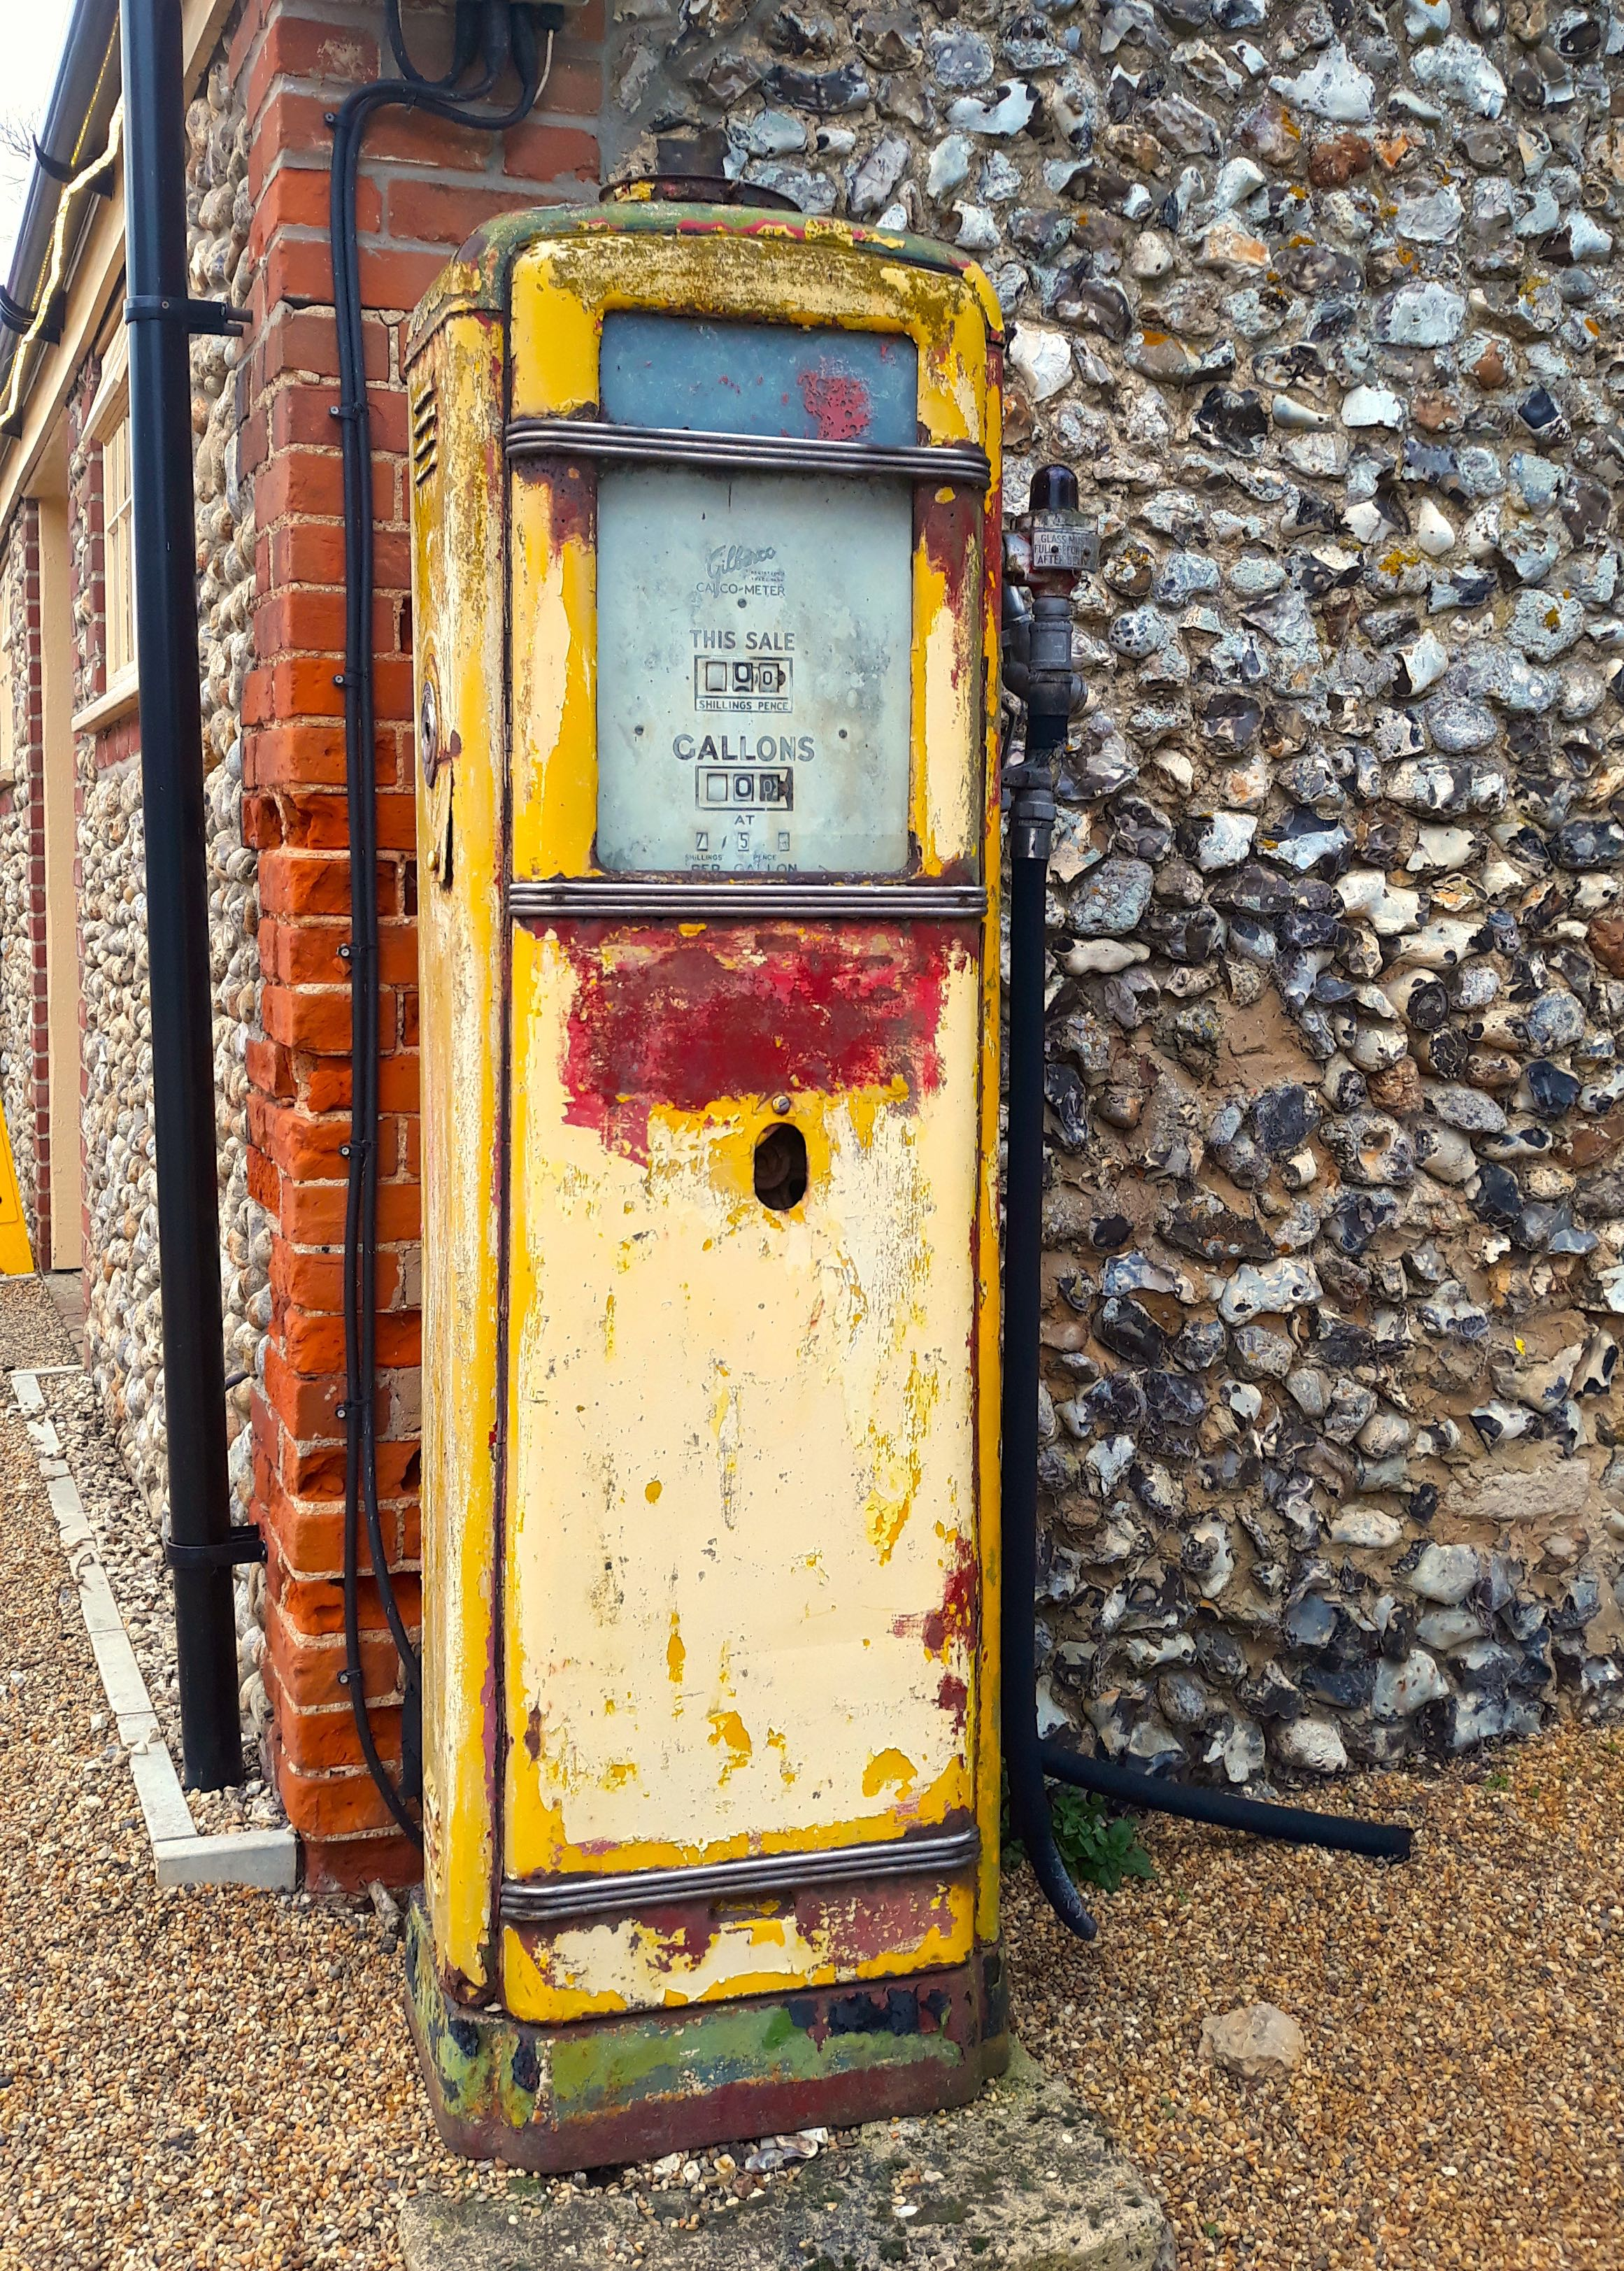 An old fashioned petrol pump